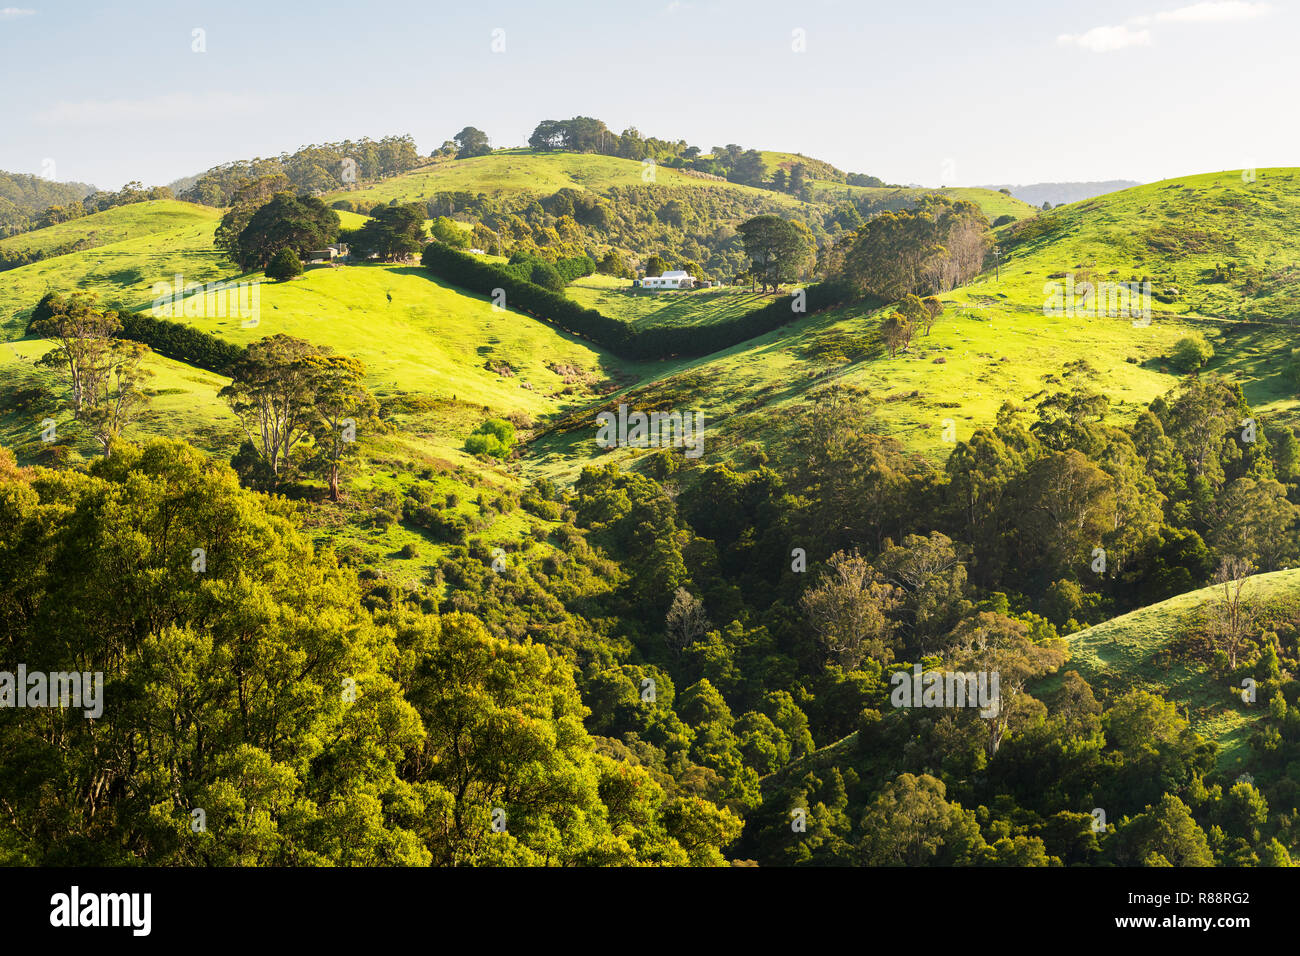 Rolling hills in the hinterland of Apollo Bay at the famous Great Ocean Road. - Stock Image